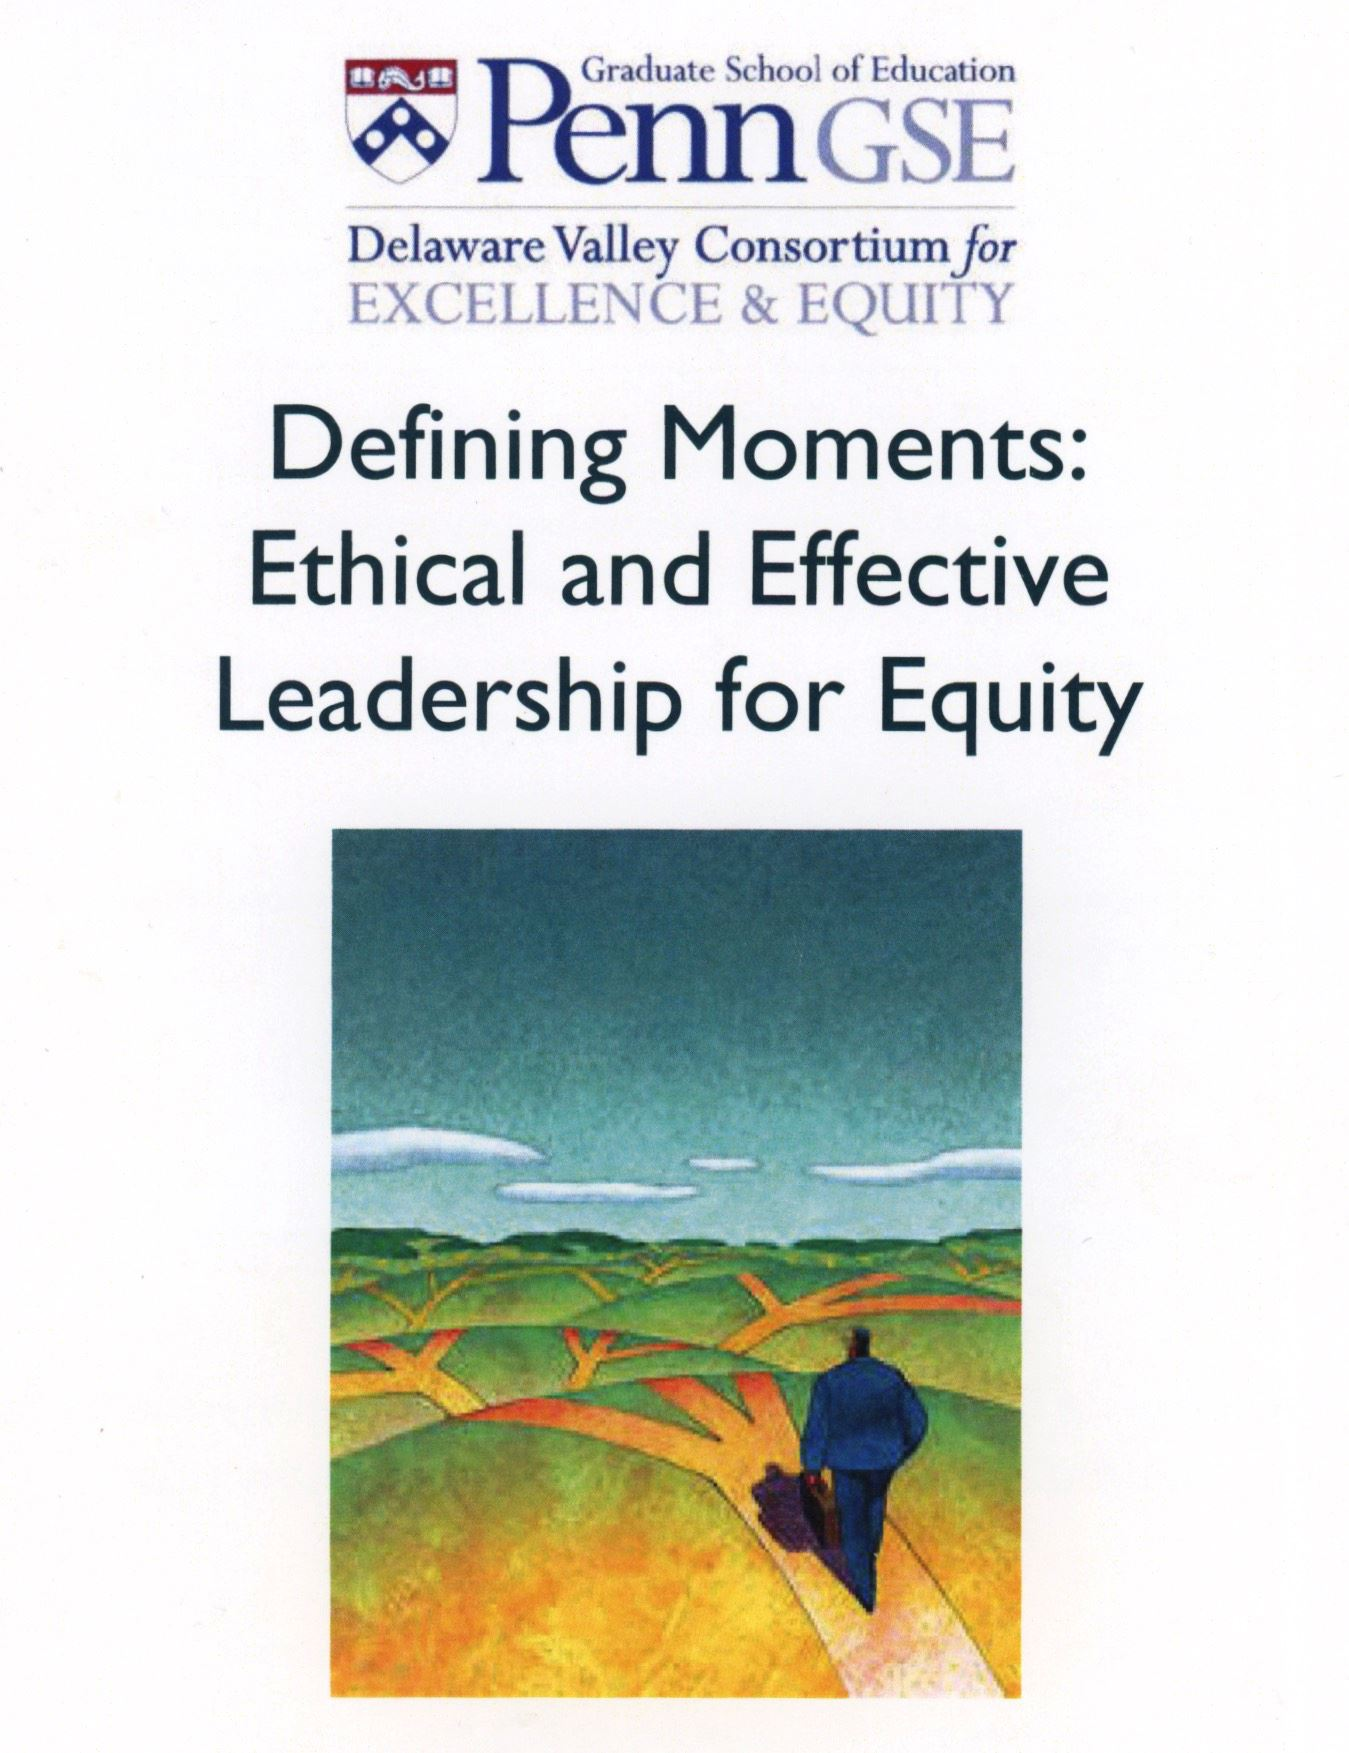 Defining Moments: Ethical and Effective Leadership for Equity